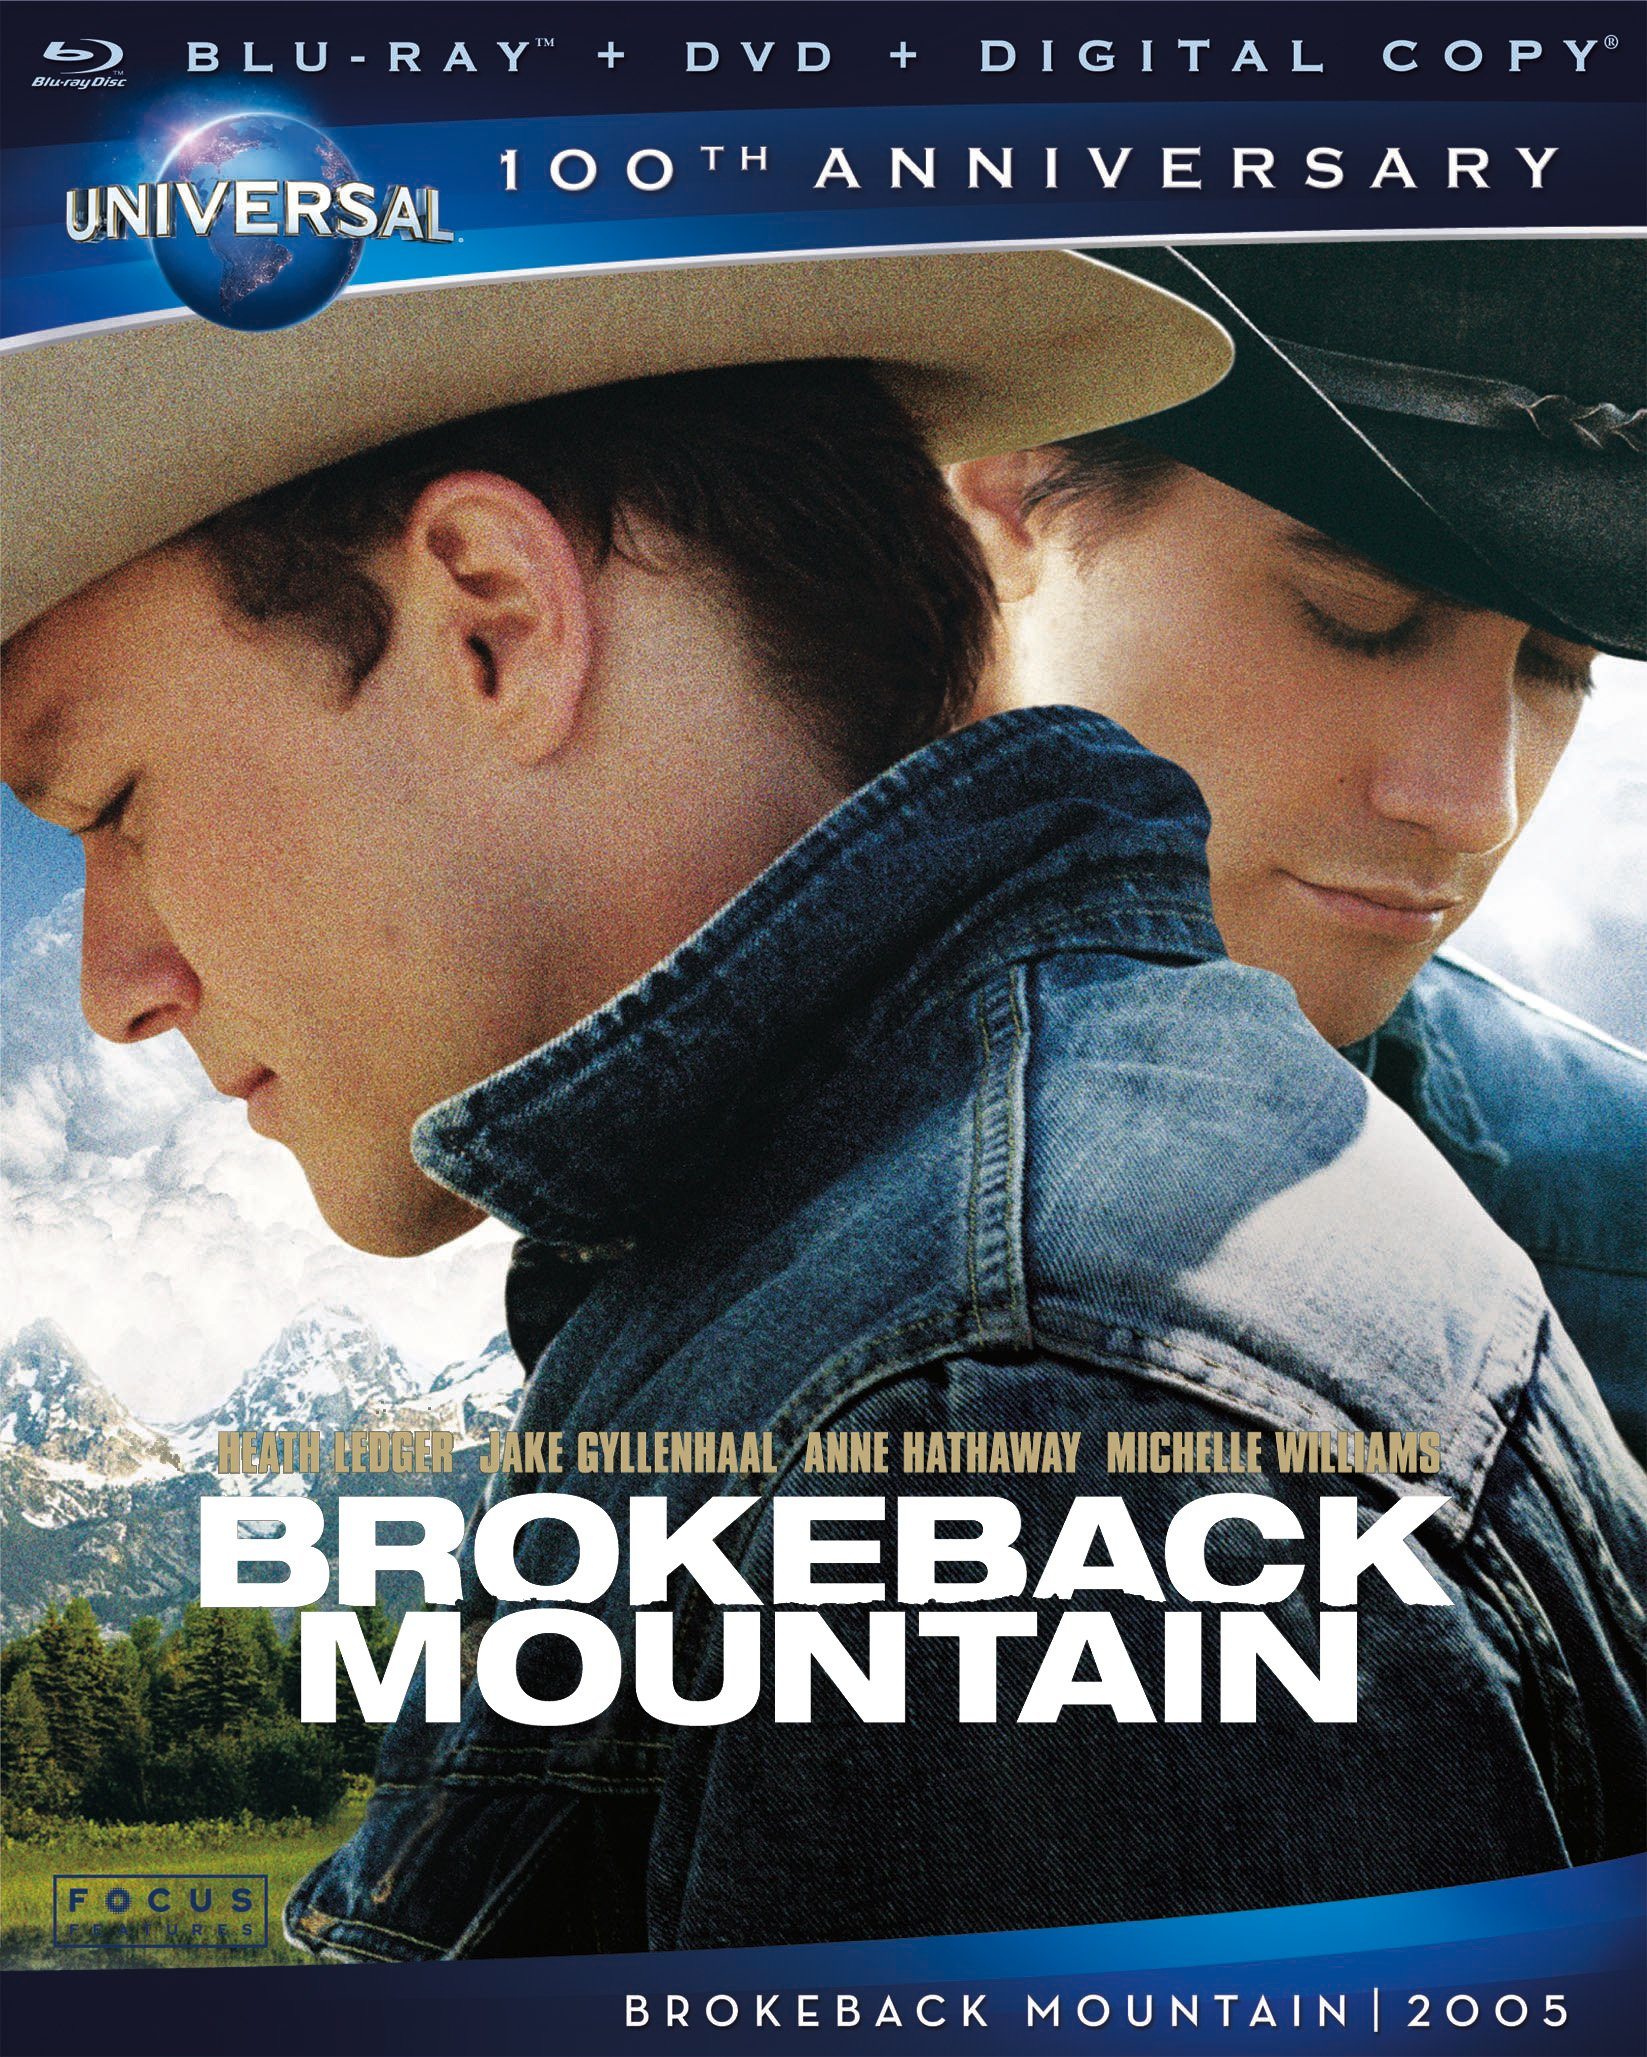 断背山/断臂山 brokeback.mountain.2005.720p.bluray